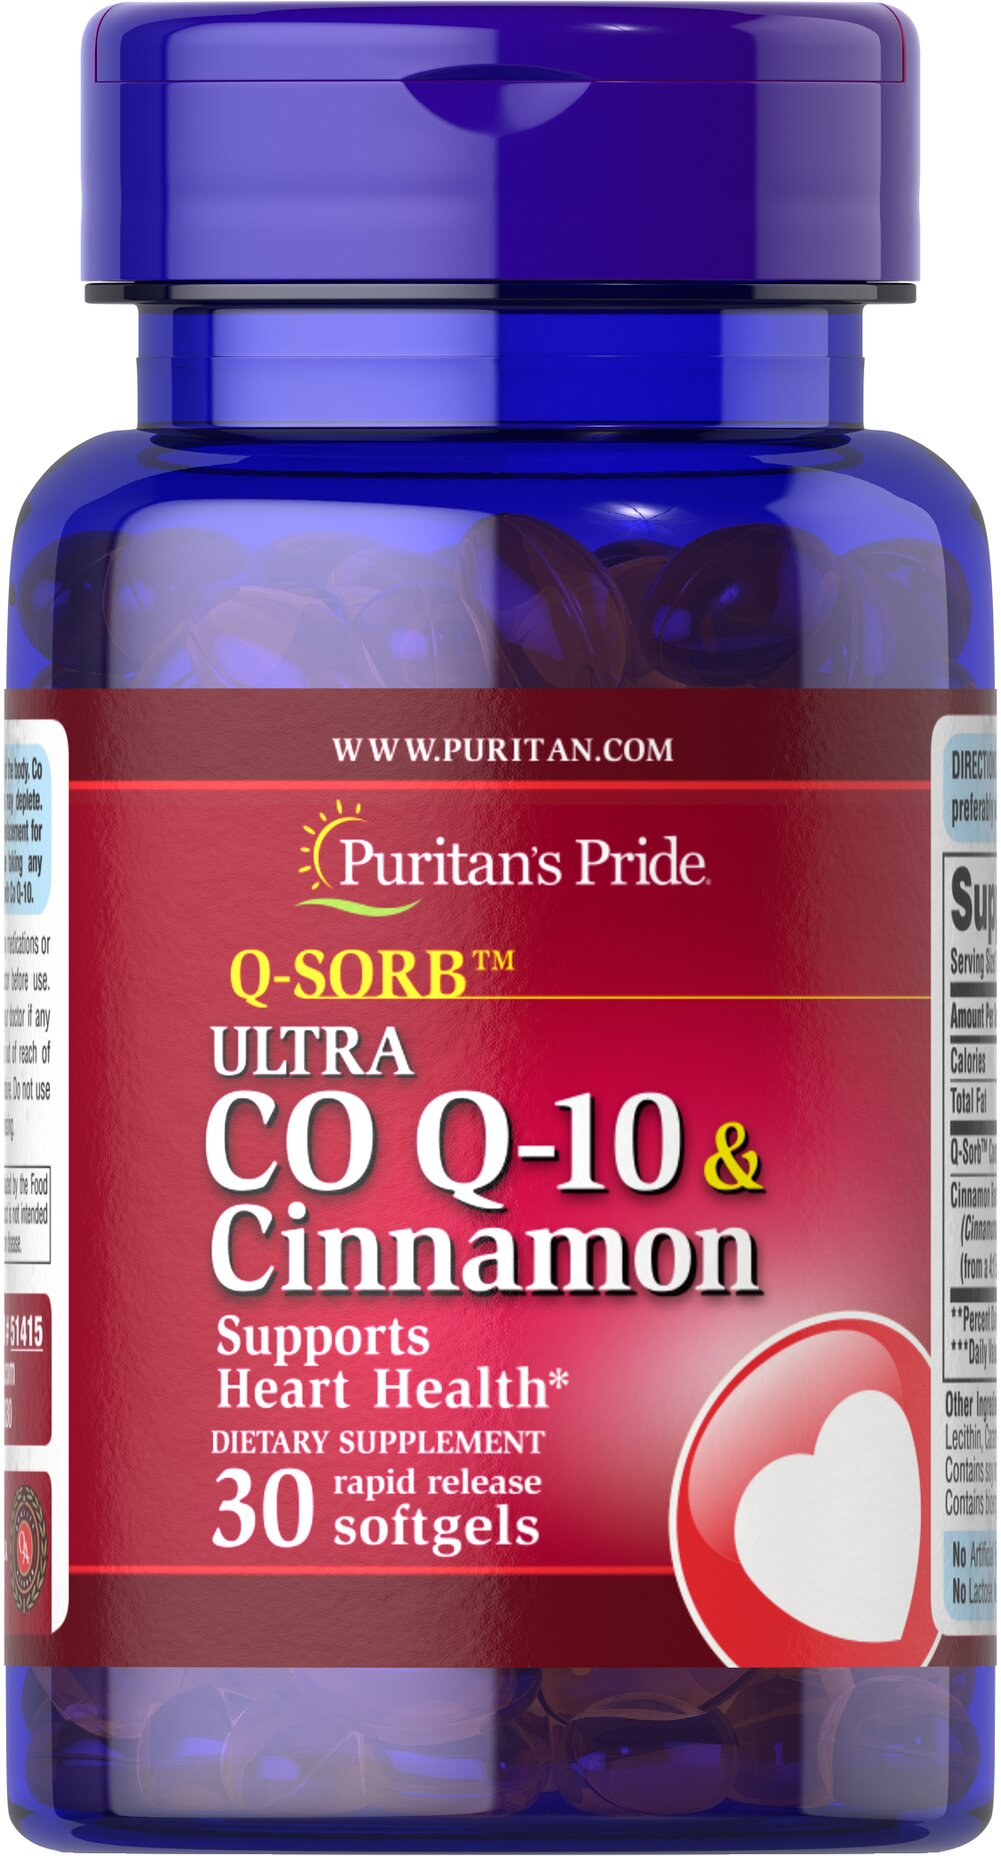 Q-SORB™ Ultra Co Q-10 200 mg & Cinnamon 1000 mg  30 Rapid Release Softgels 200 mg/1000 mg $26.99